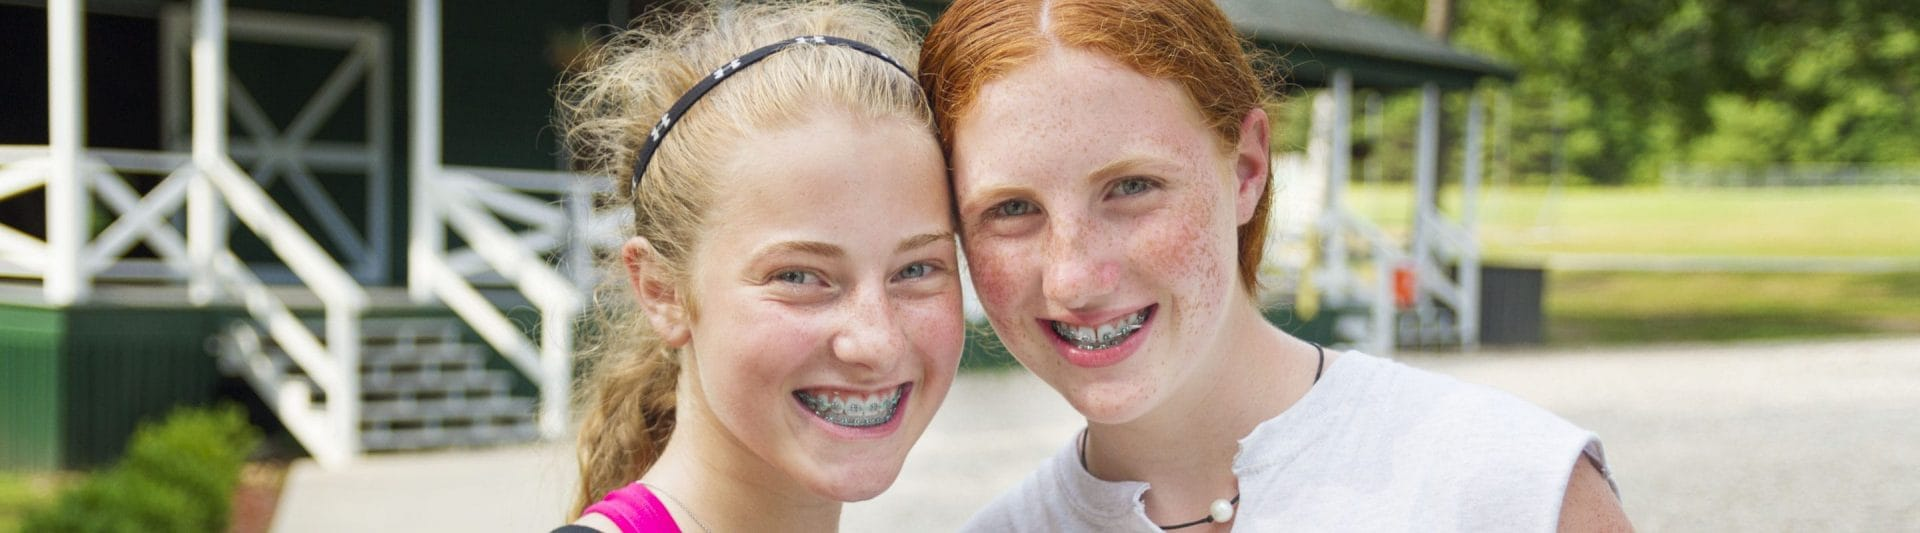 two girls with braces smiling